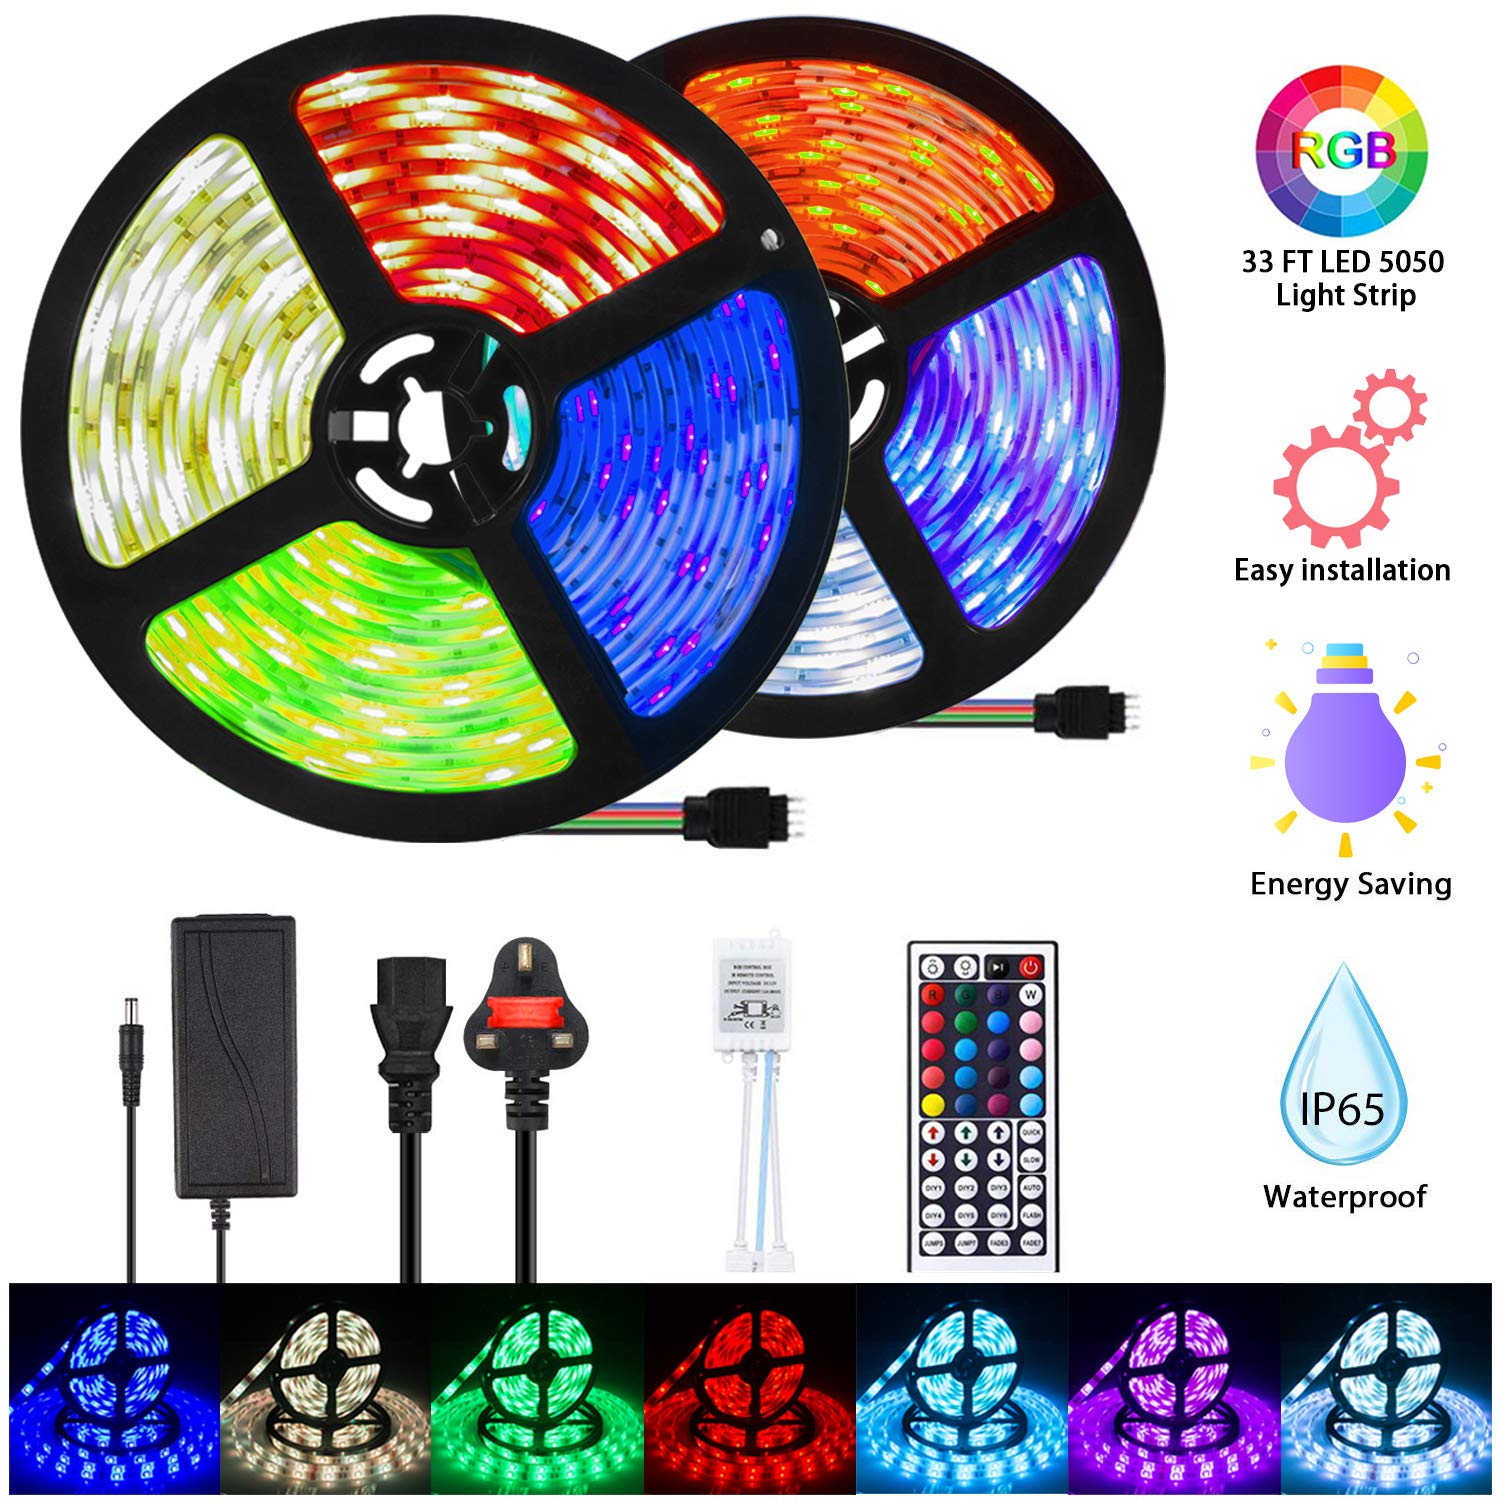 Mowetoo LED Strips Lights, 10M 300LEDs 5050 Color Changing RGB SMD with 44-Keys Remote Control, IP65 Waterproof 12V Power Decoration for Kitchen Wedding Party Garden House